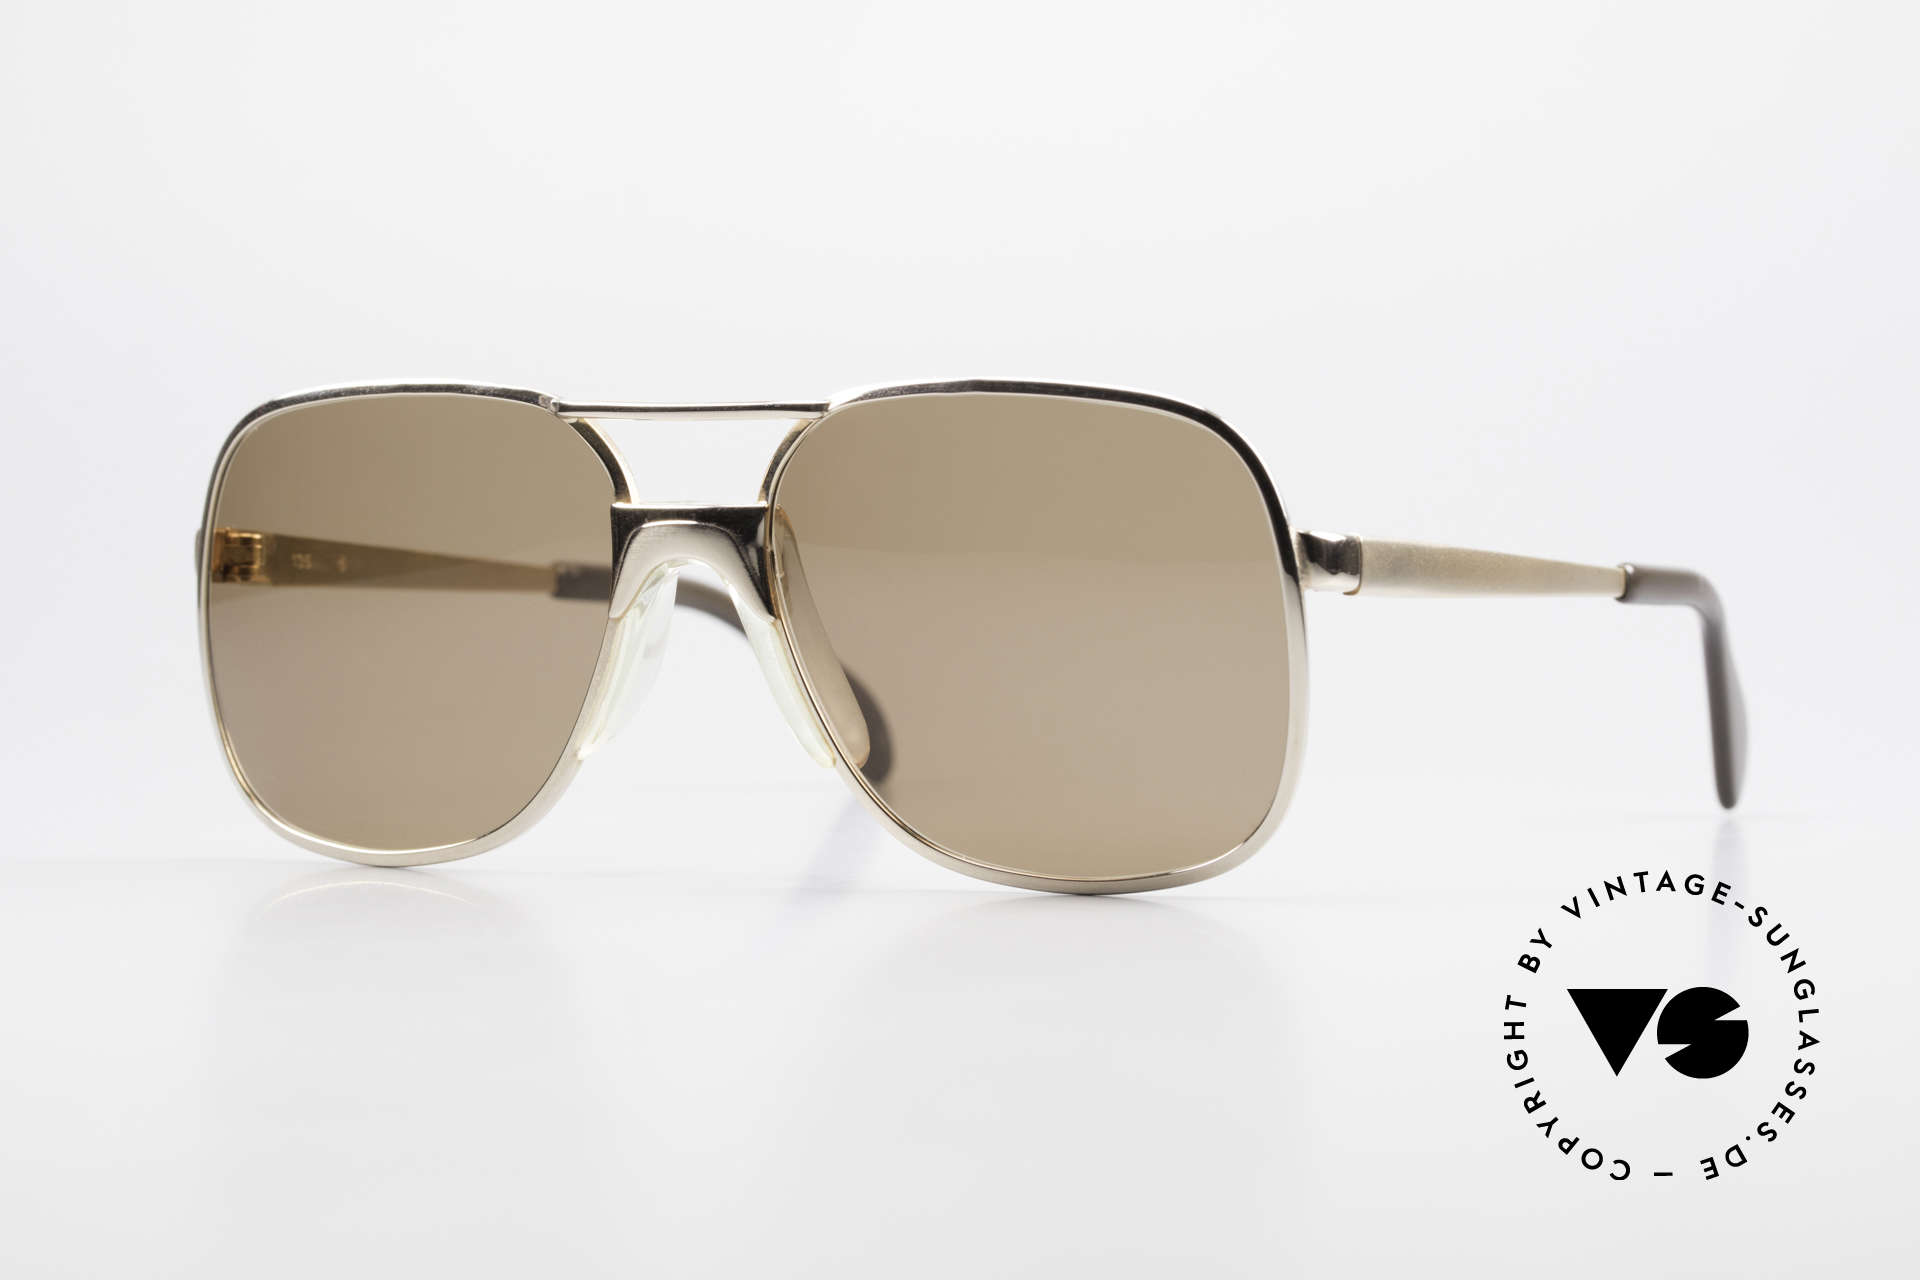 Metzler 7680 Small 80's Frame Gold Plated, old school vintage 80's sunglasses; SMALL size, Made for Men